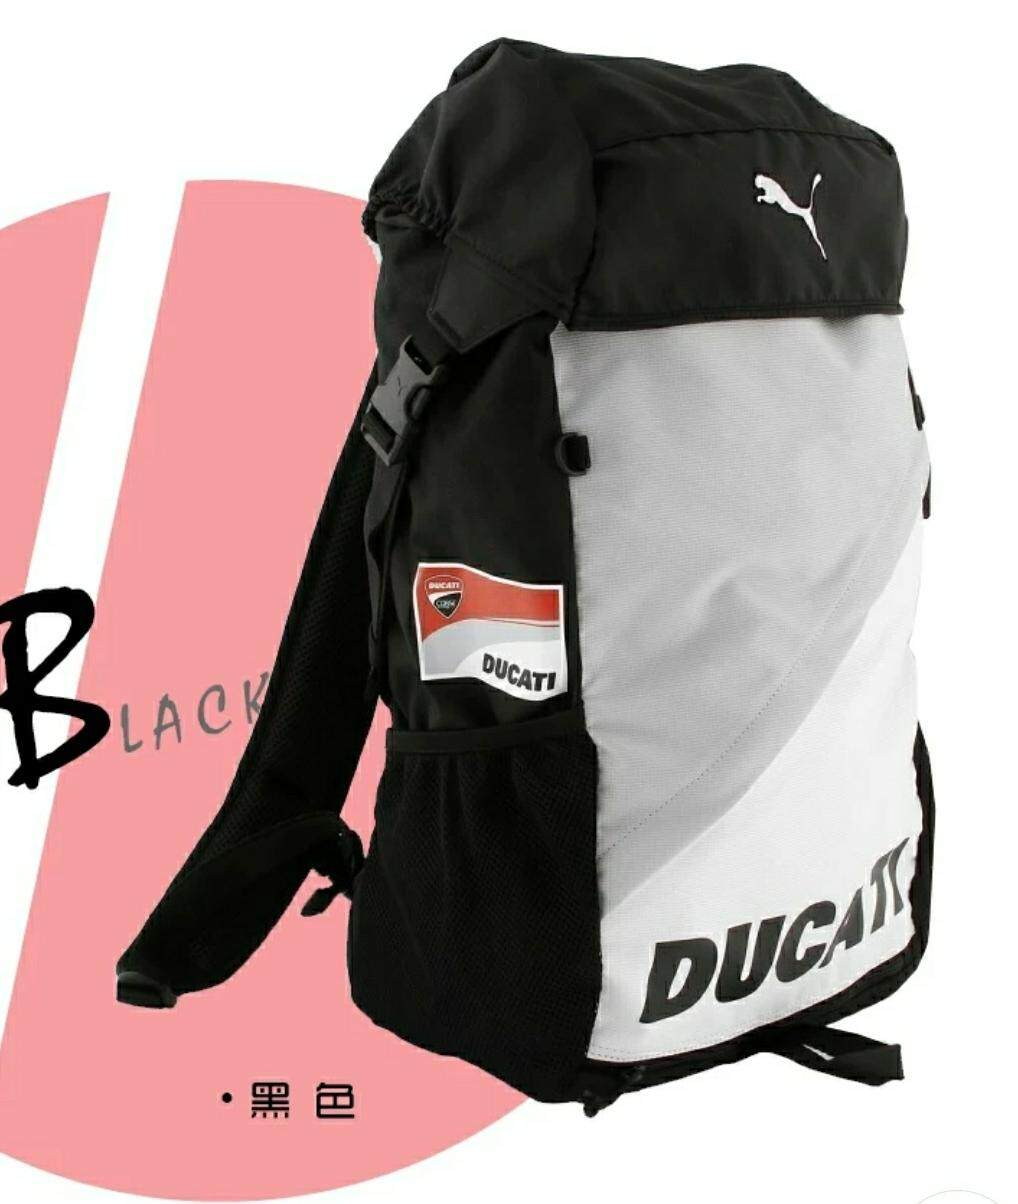 Ducati bag motorcycle riding backpack